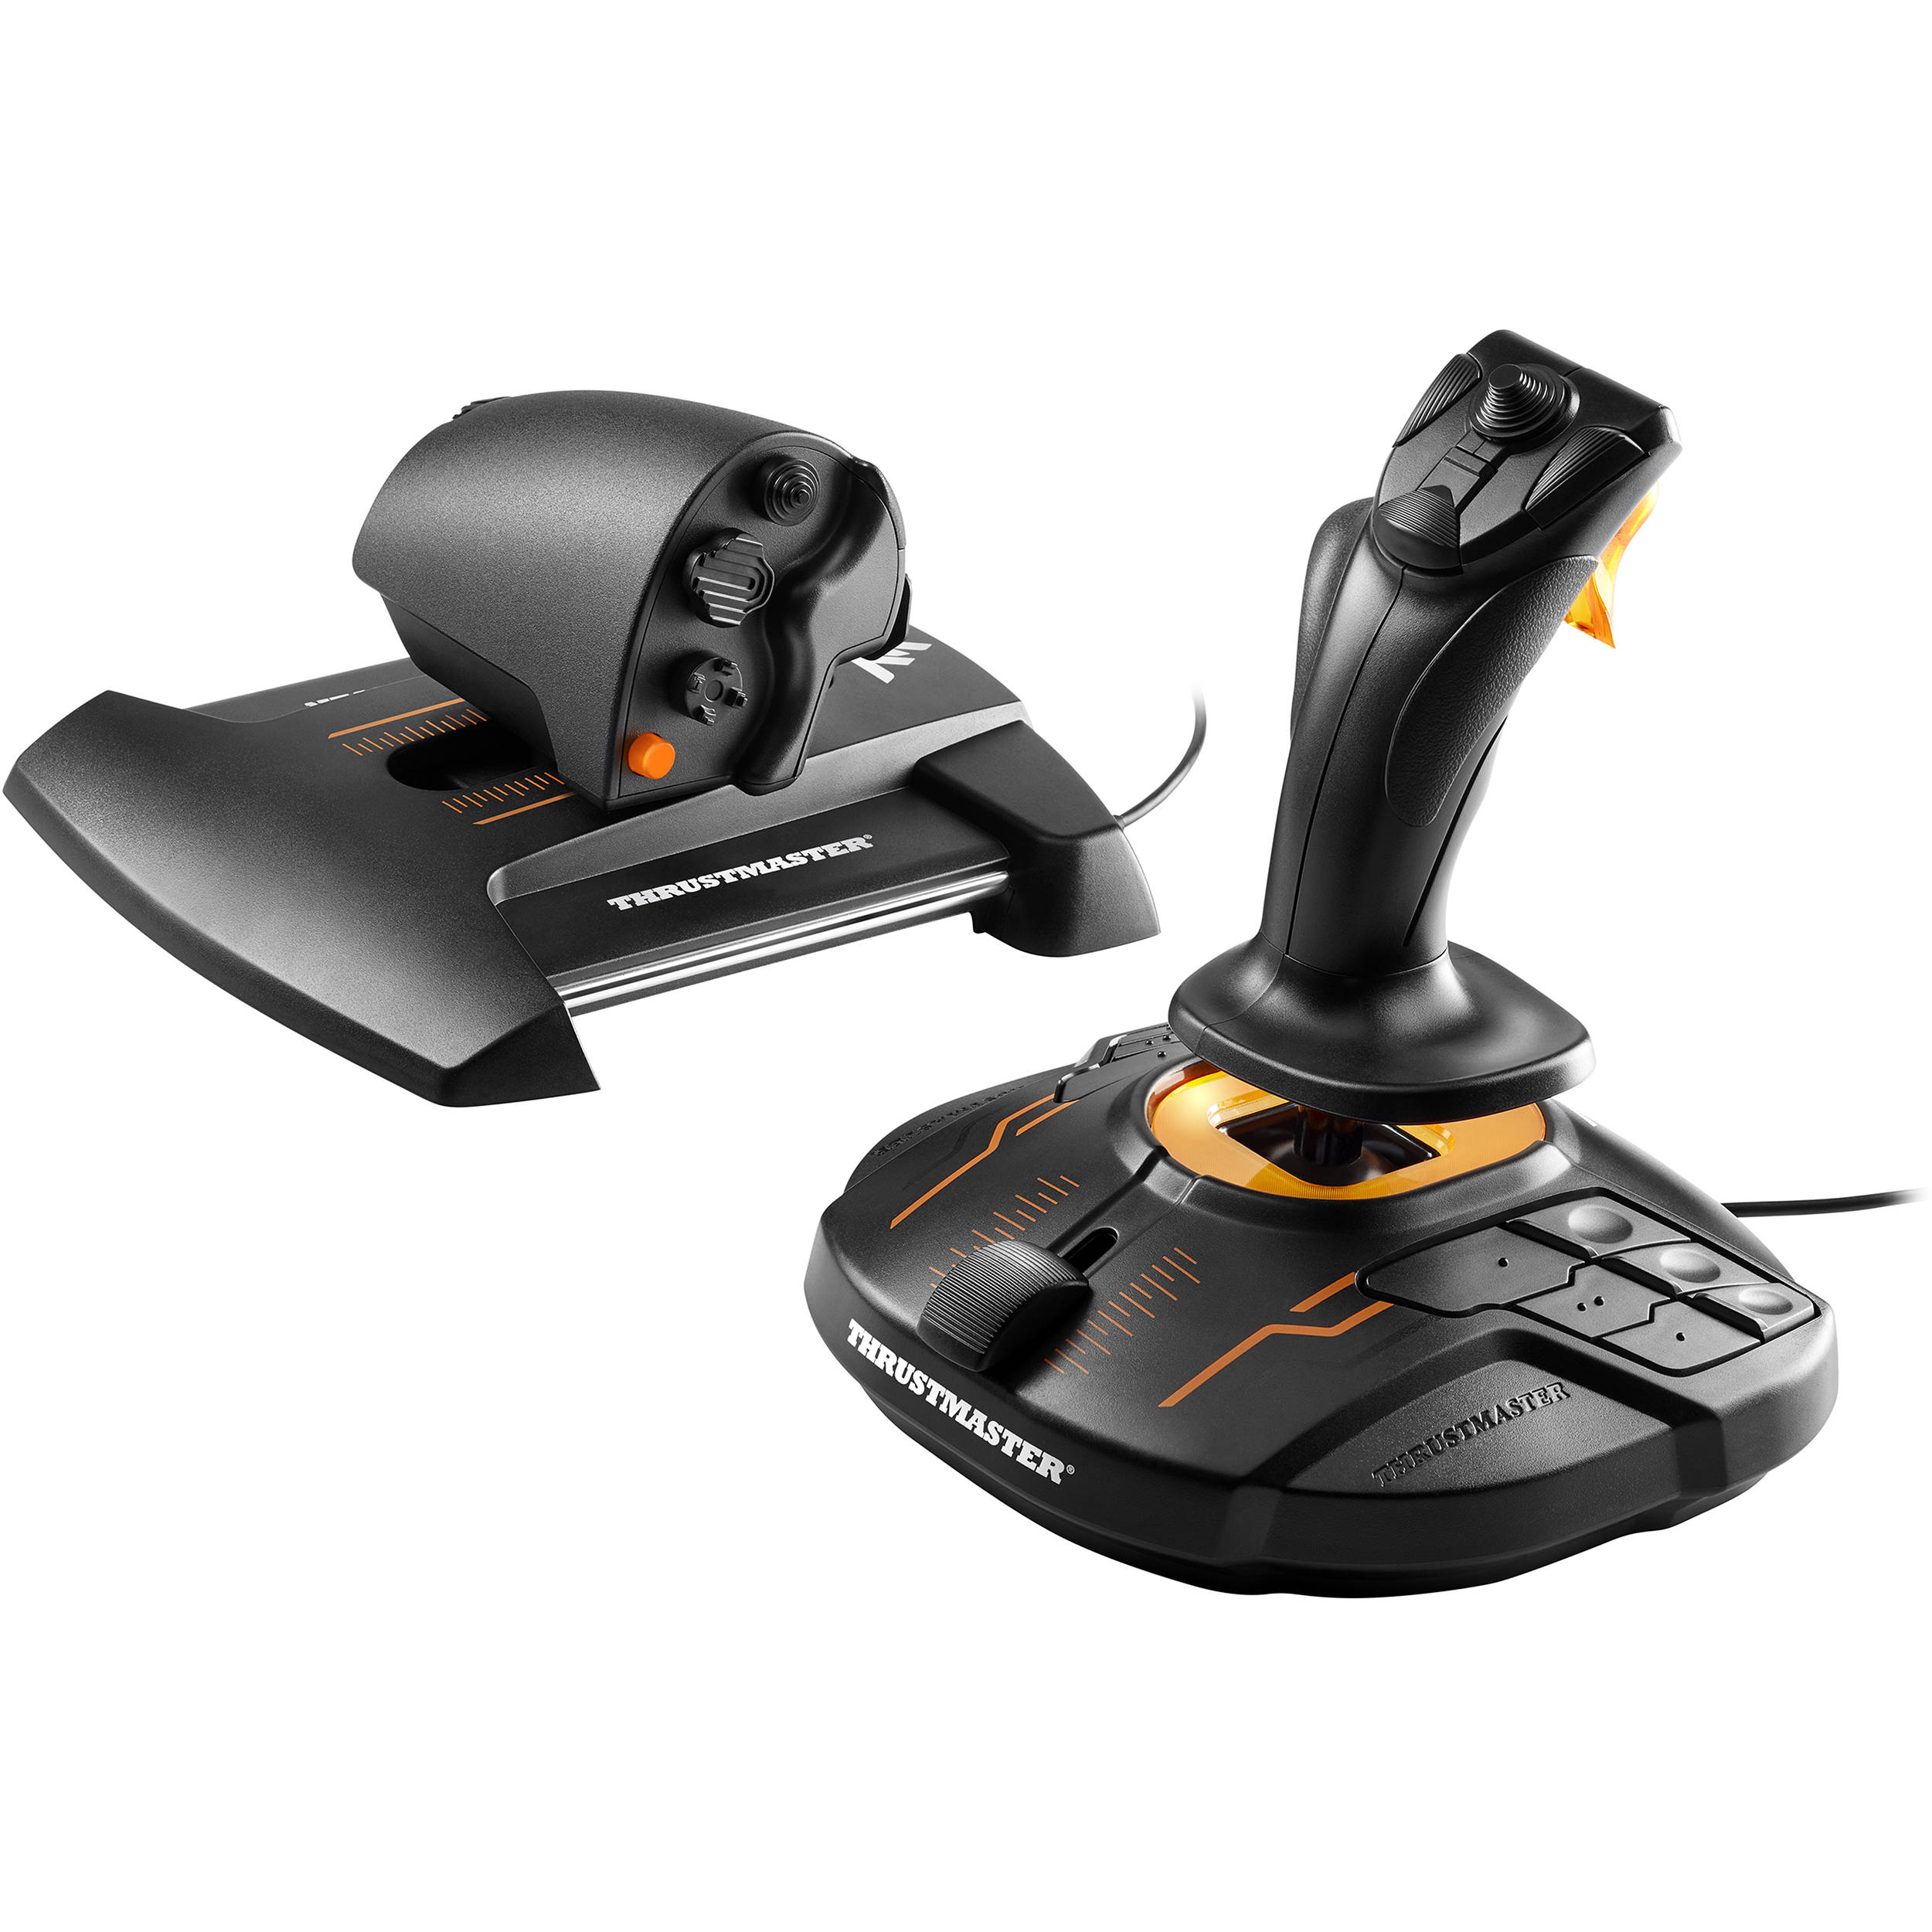 thrustmaster fcs hotas flight stick and throttle. Black Bedroom Furniture Sets. Home Design Ideas